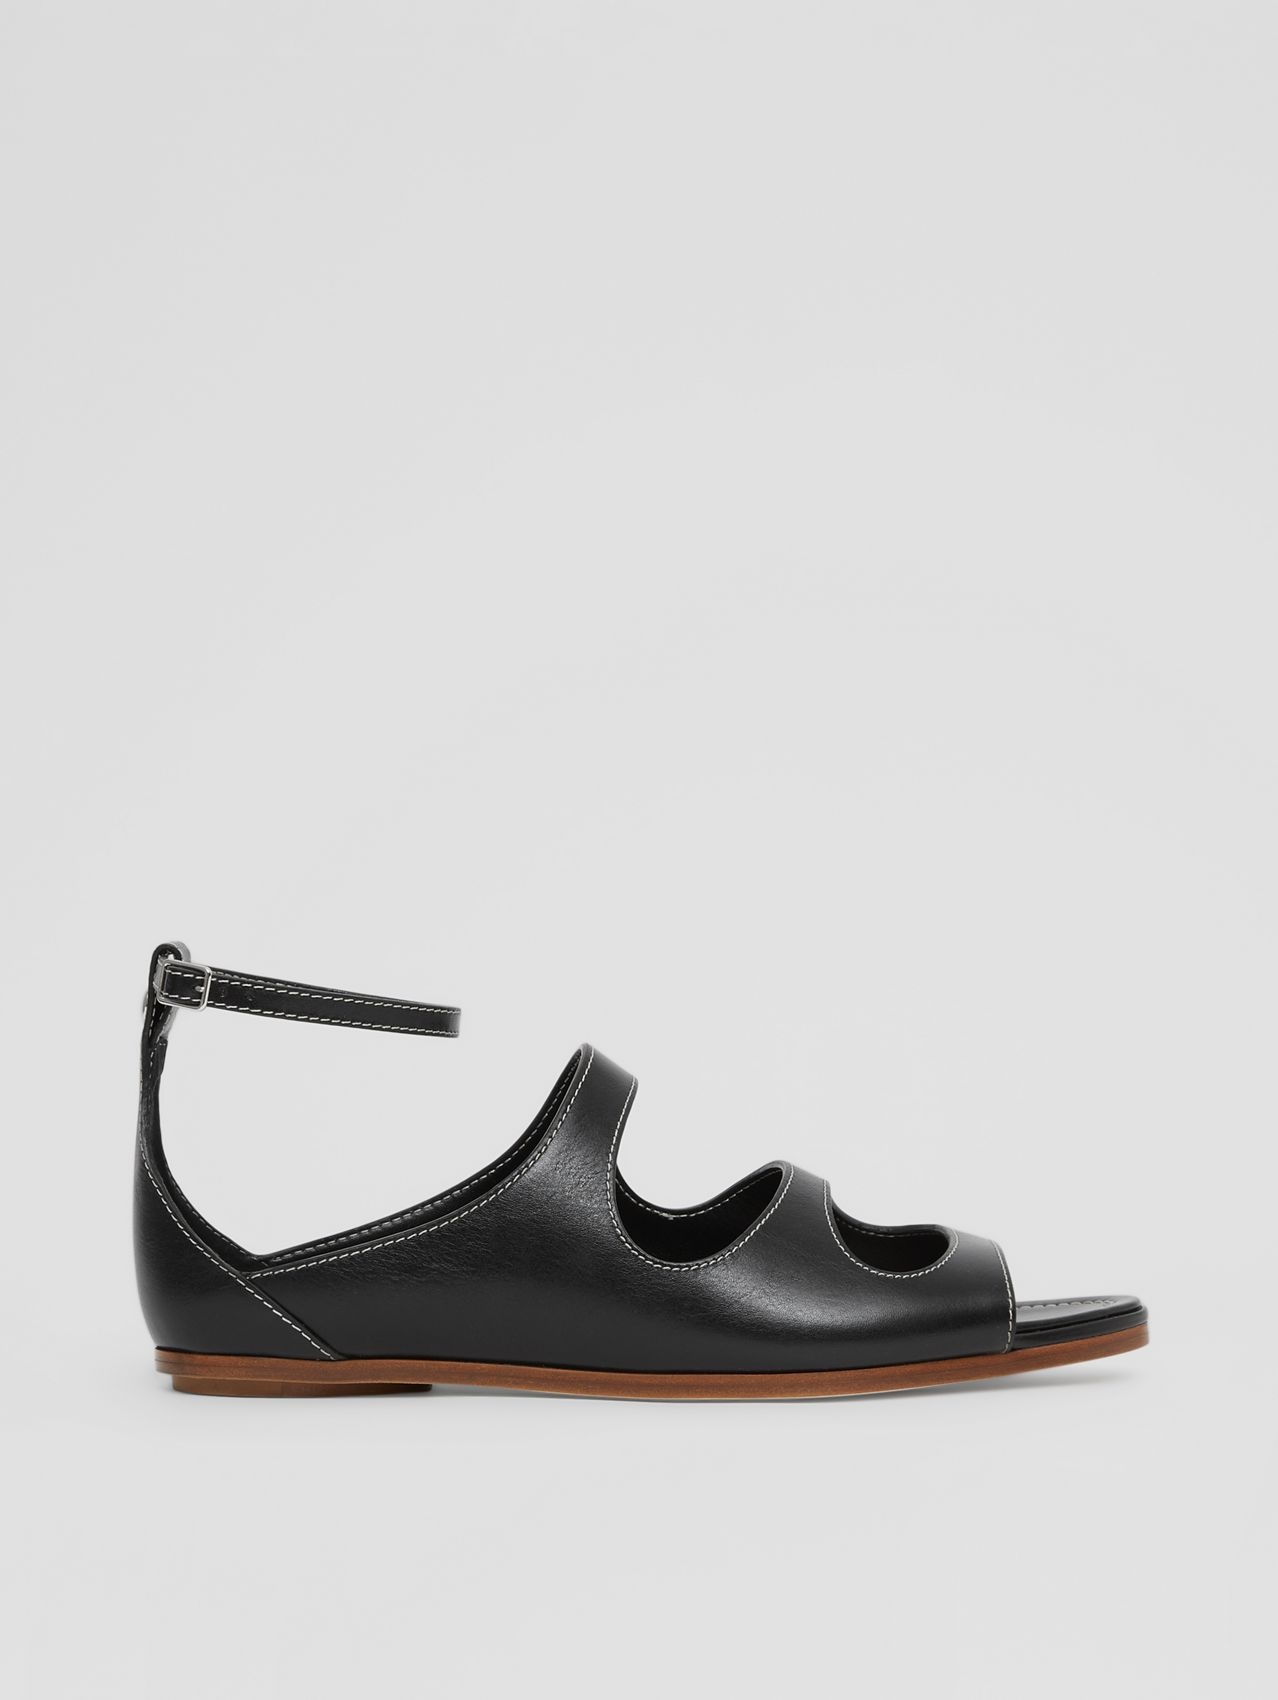 Cut-out Detail Topstitched Leather Sandals in Black